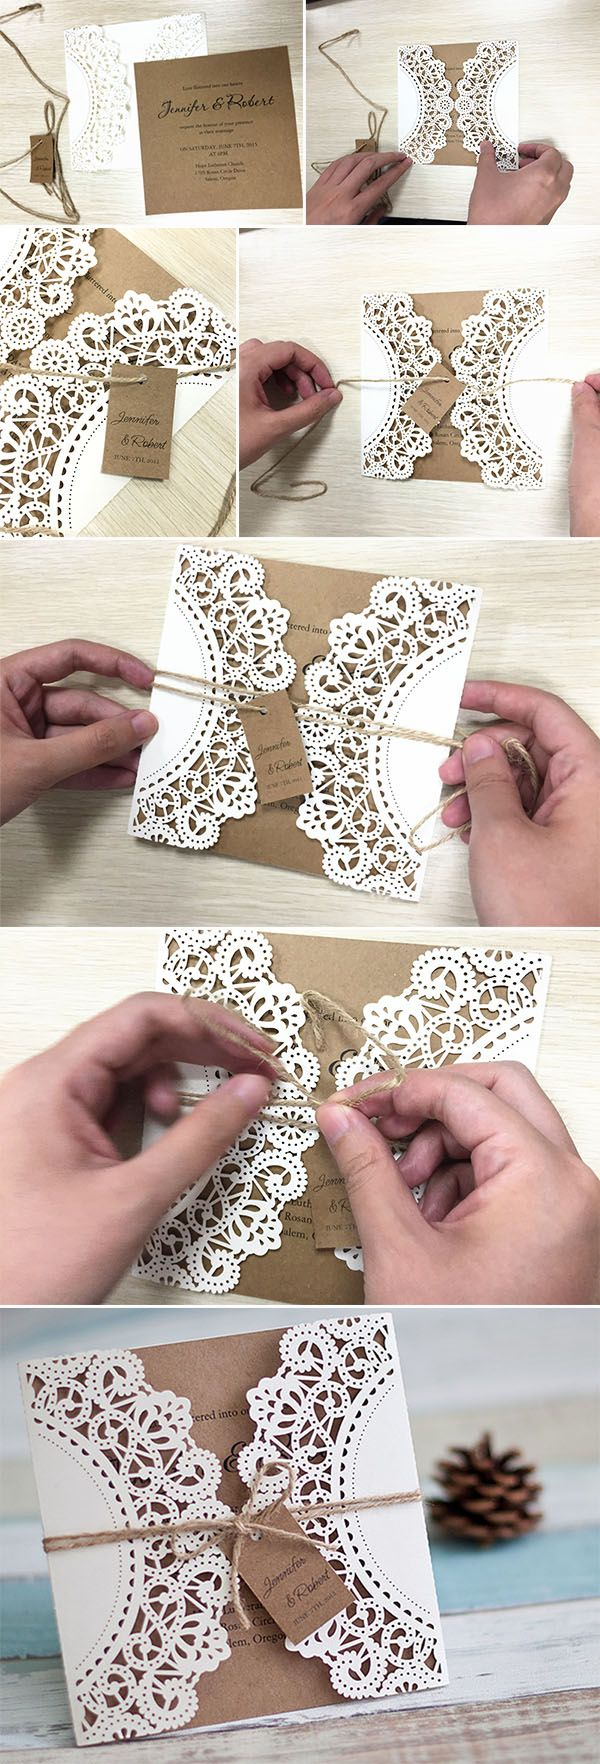 country wedding invitations DIY Wedding Ideas 10 Perfect Ways to Use Paper for Weddings